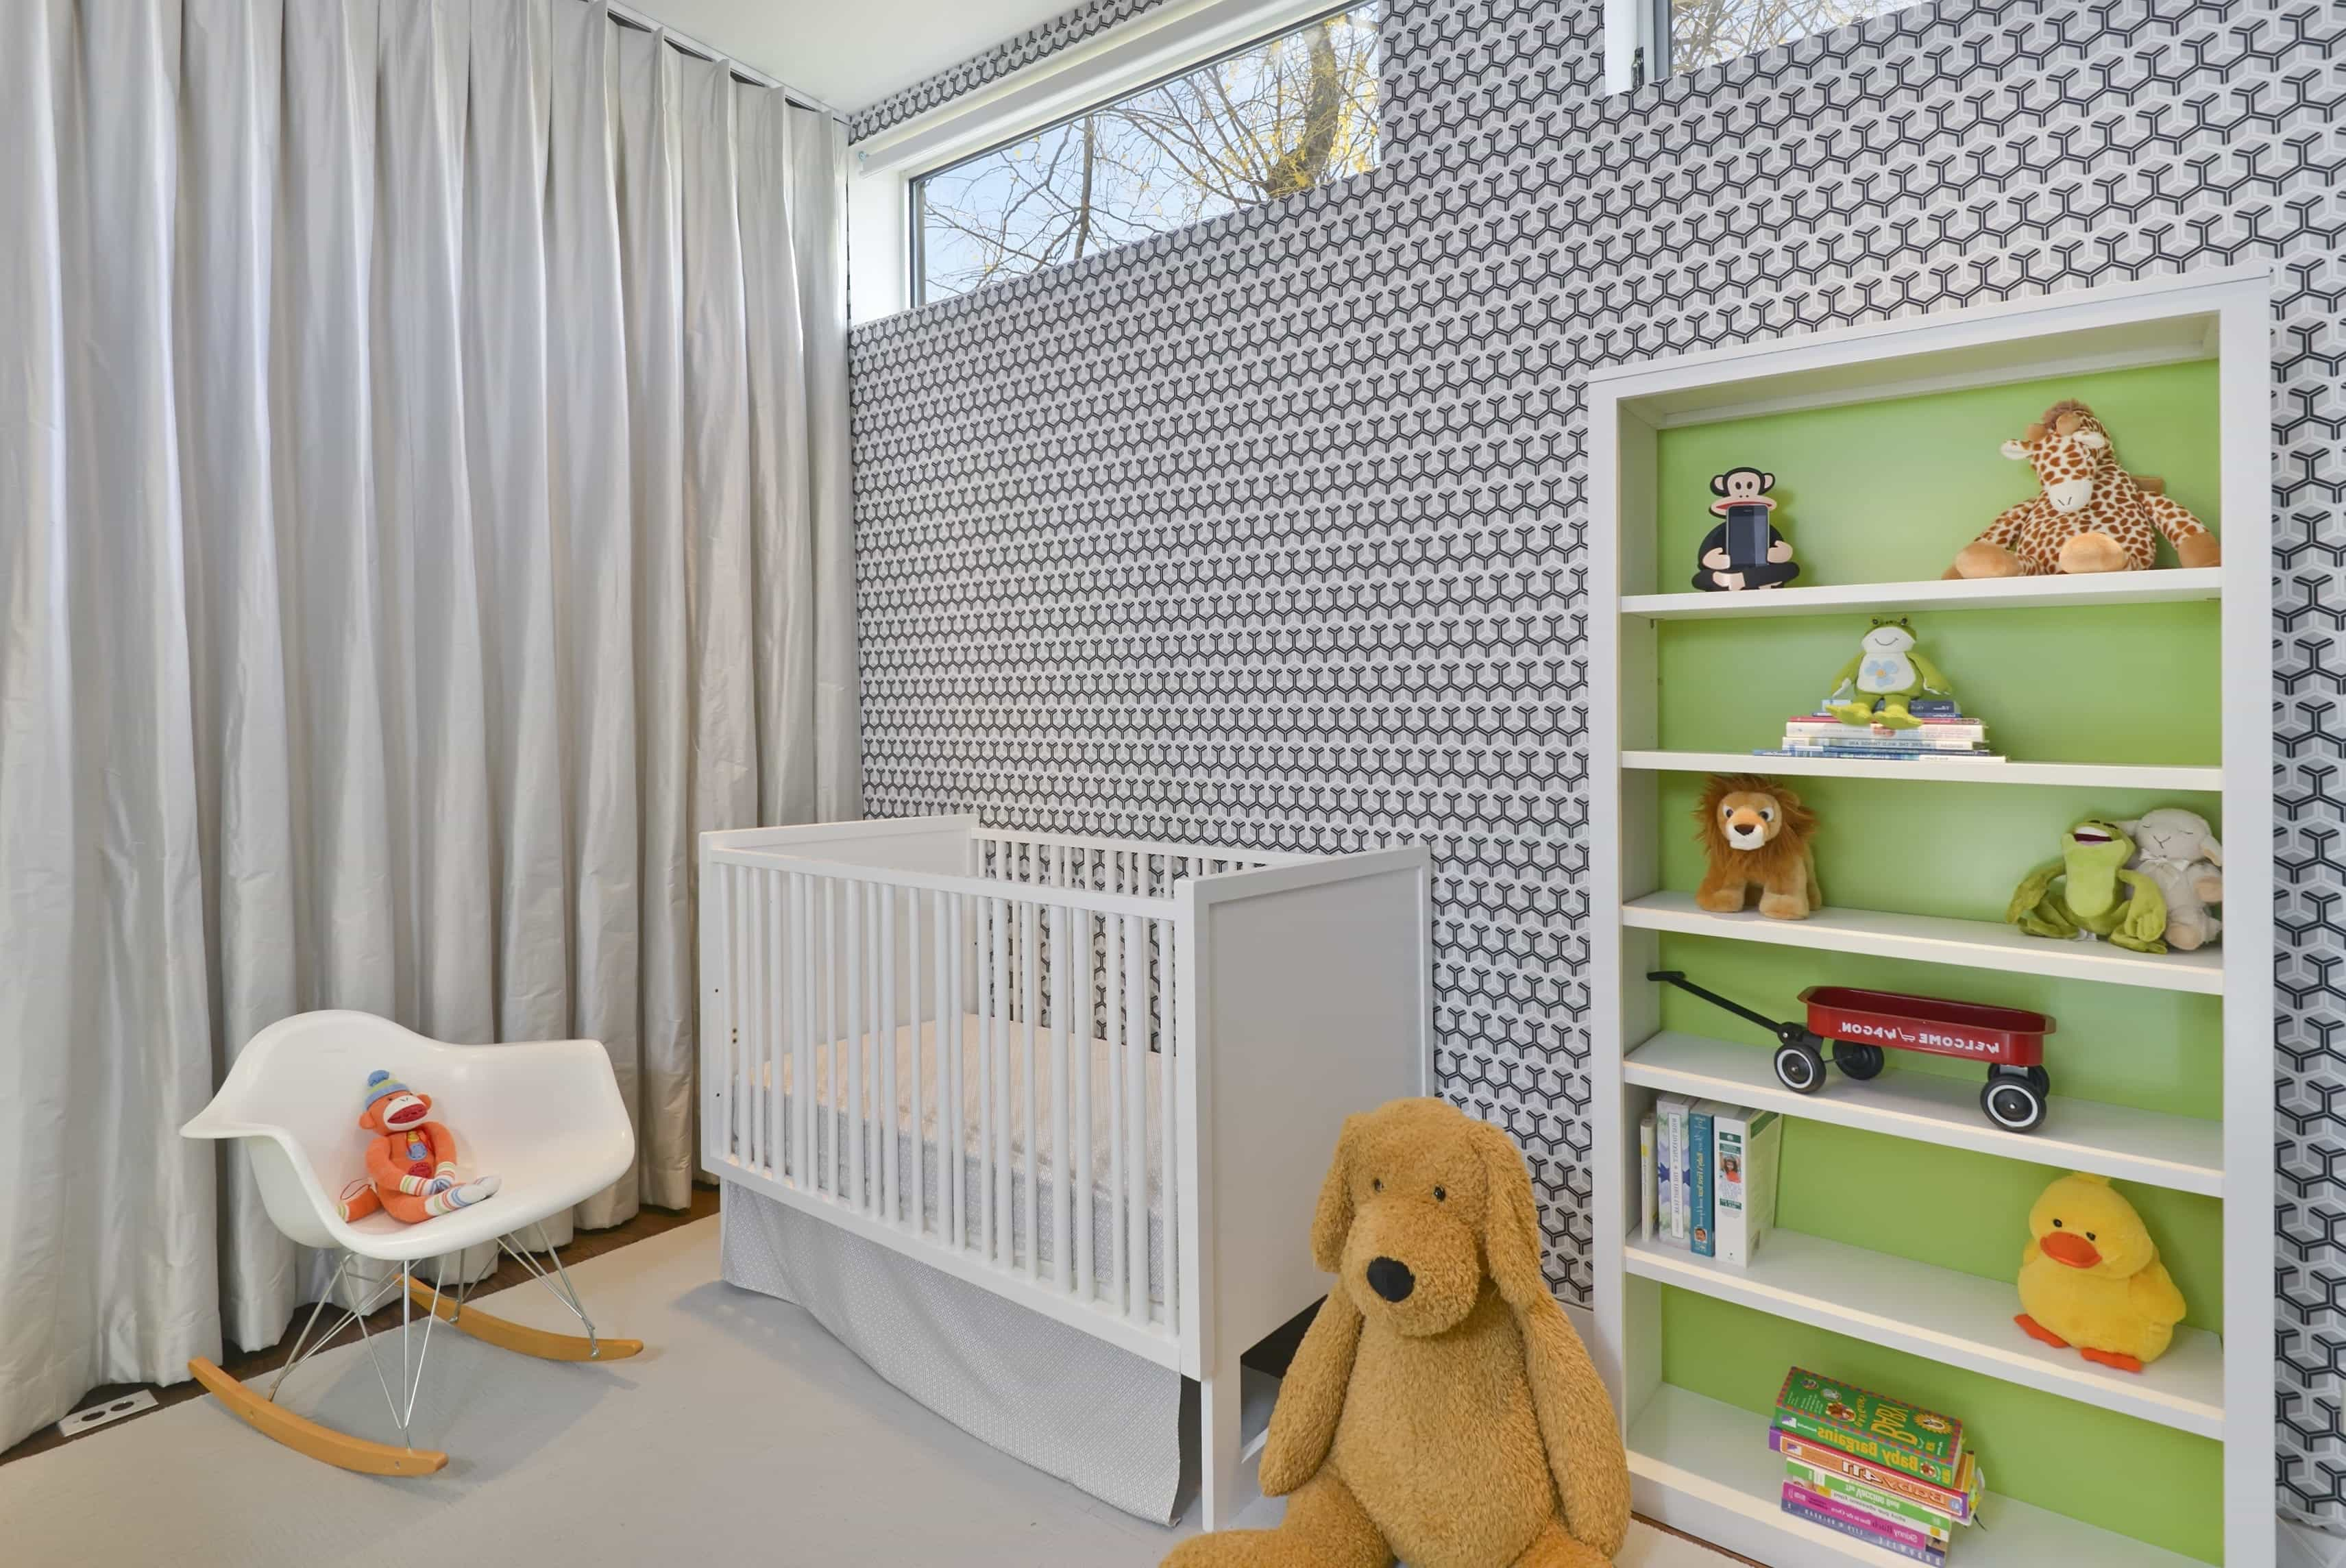 Modern Baby Room Decor Boasts Geometric Wallpaper (Image 22 of 33)